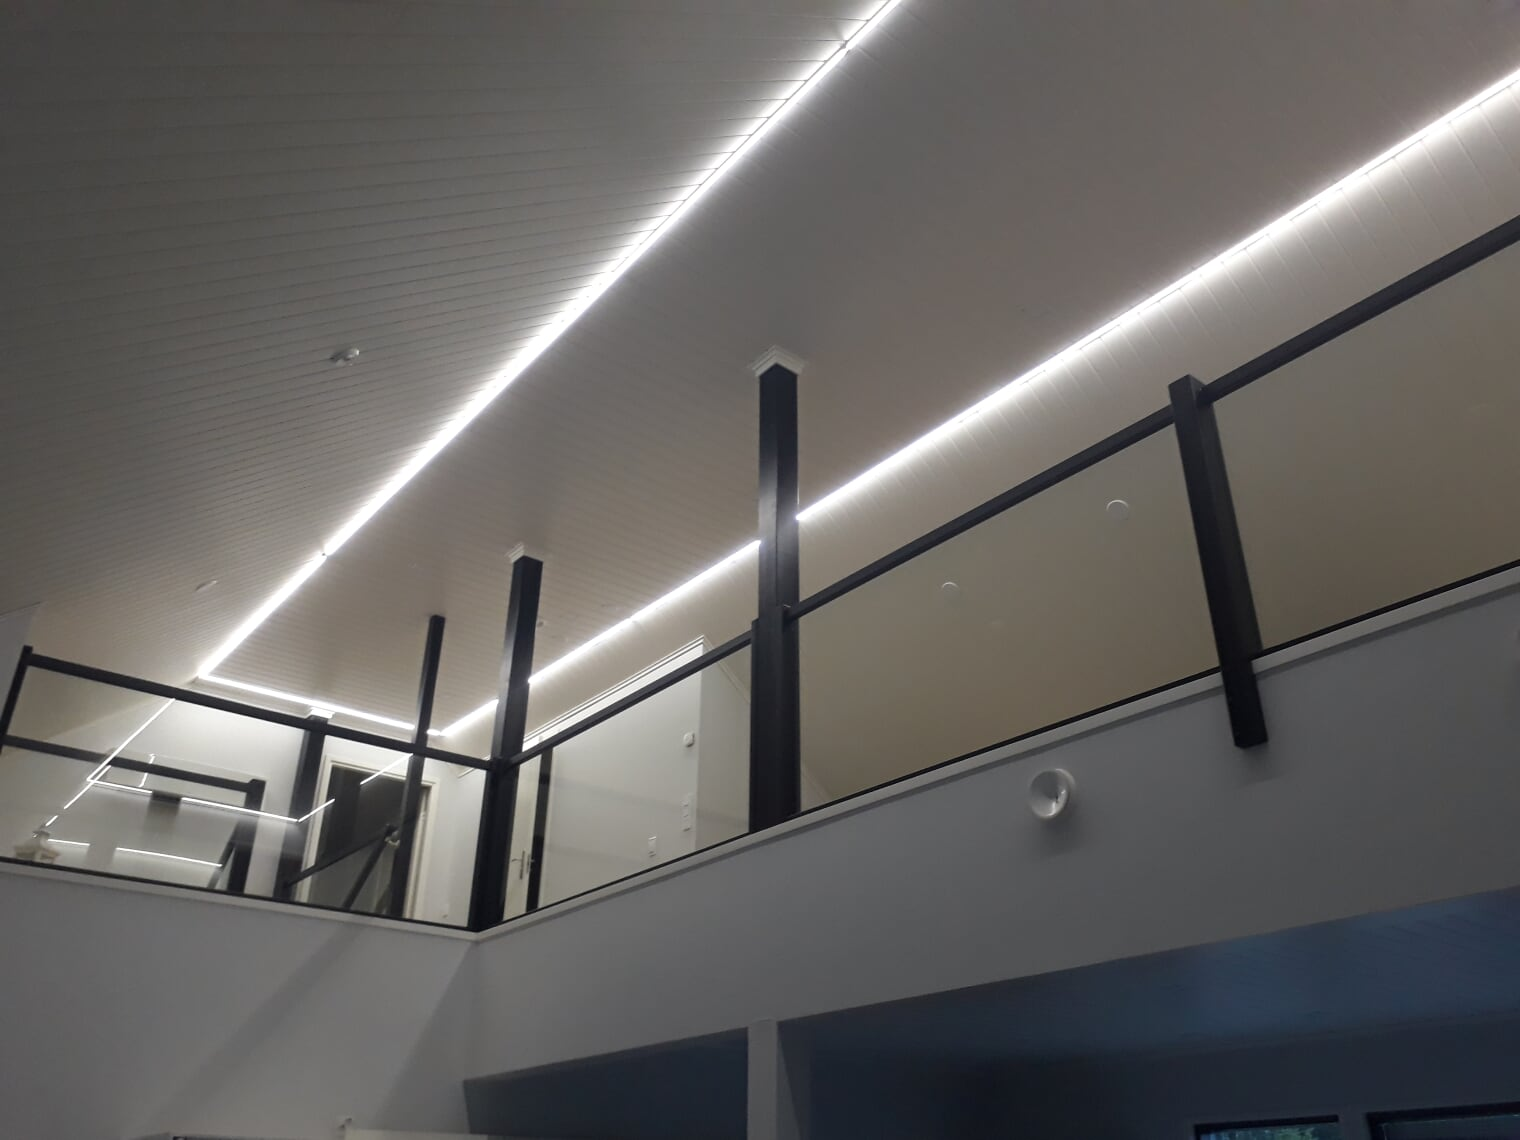 Led lights manufacturer who provides perfect tools for designers